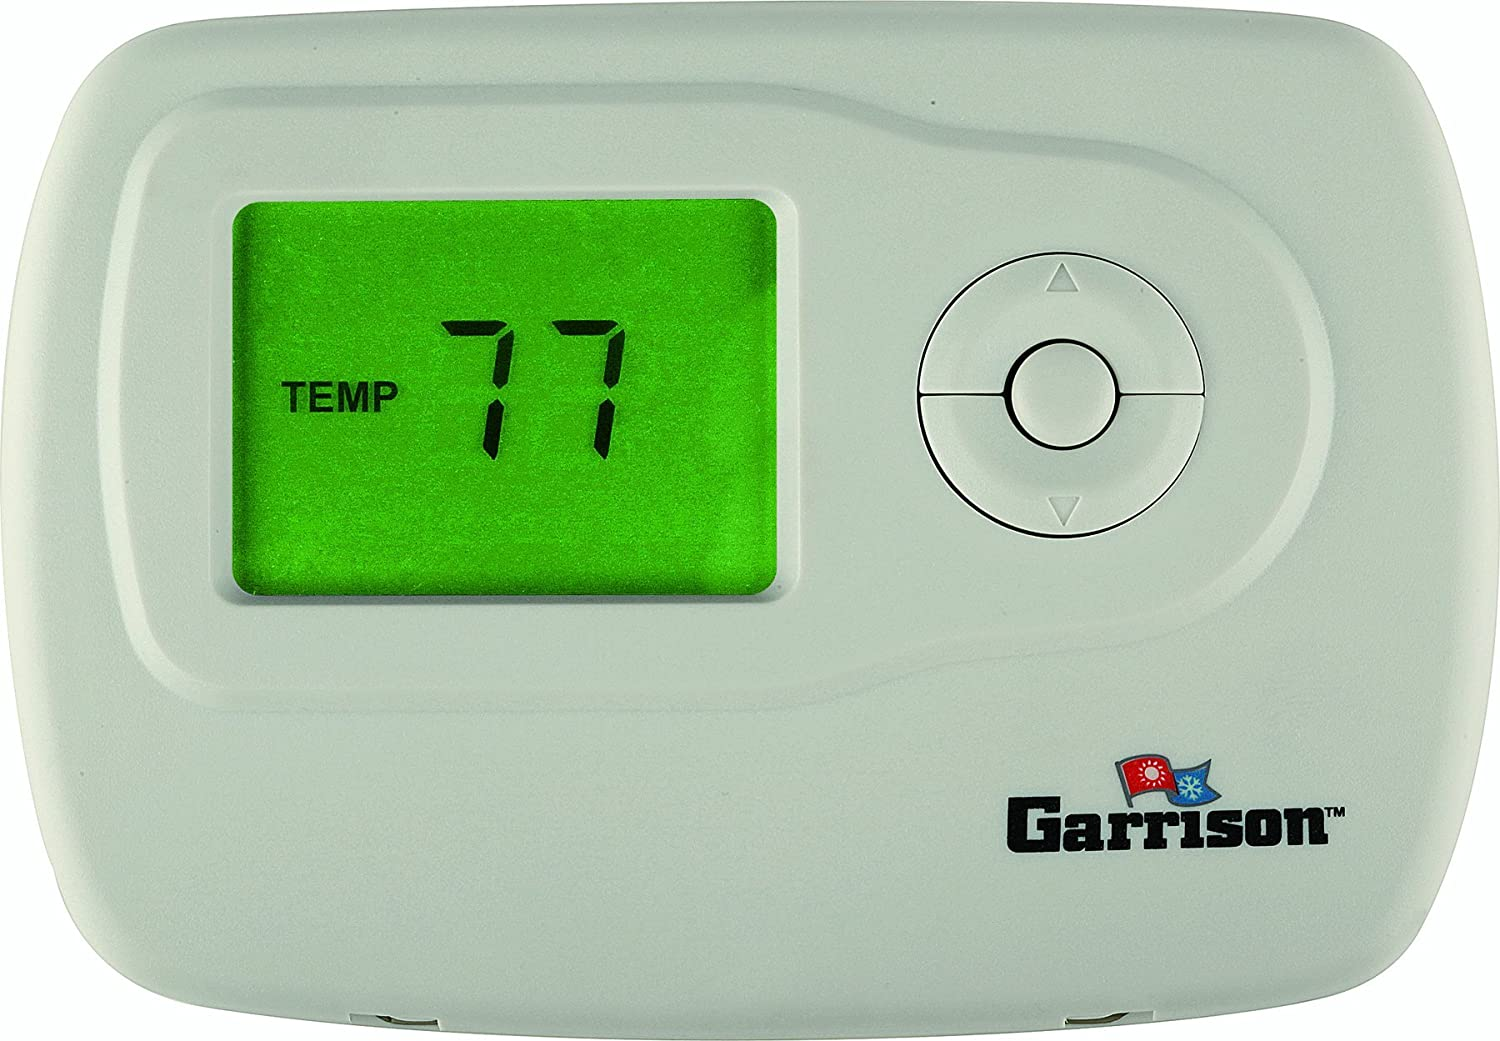 GARRISON 755397 1 Stage Heat/Cool Non-Programmable Digital Thermostat -  Ceiling Fan Replacement Blades - Amazon.com